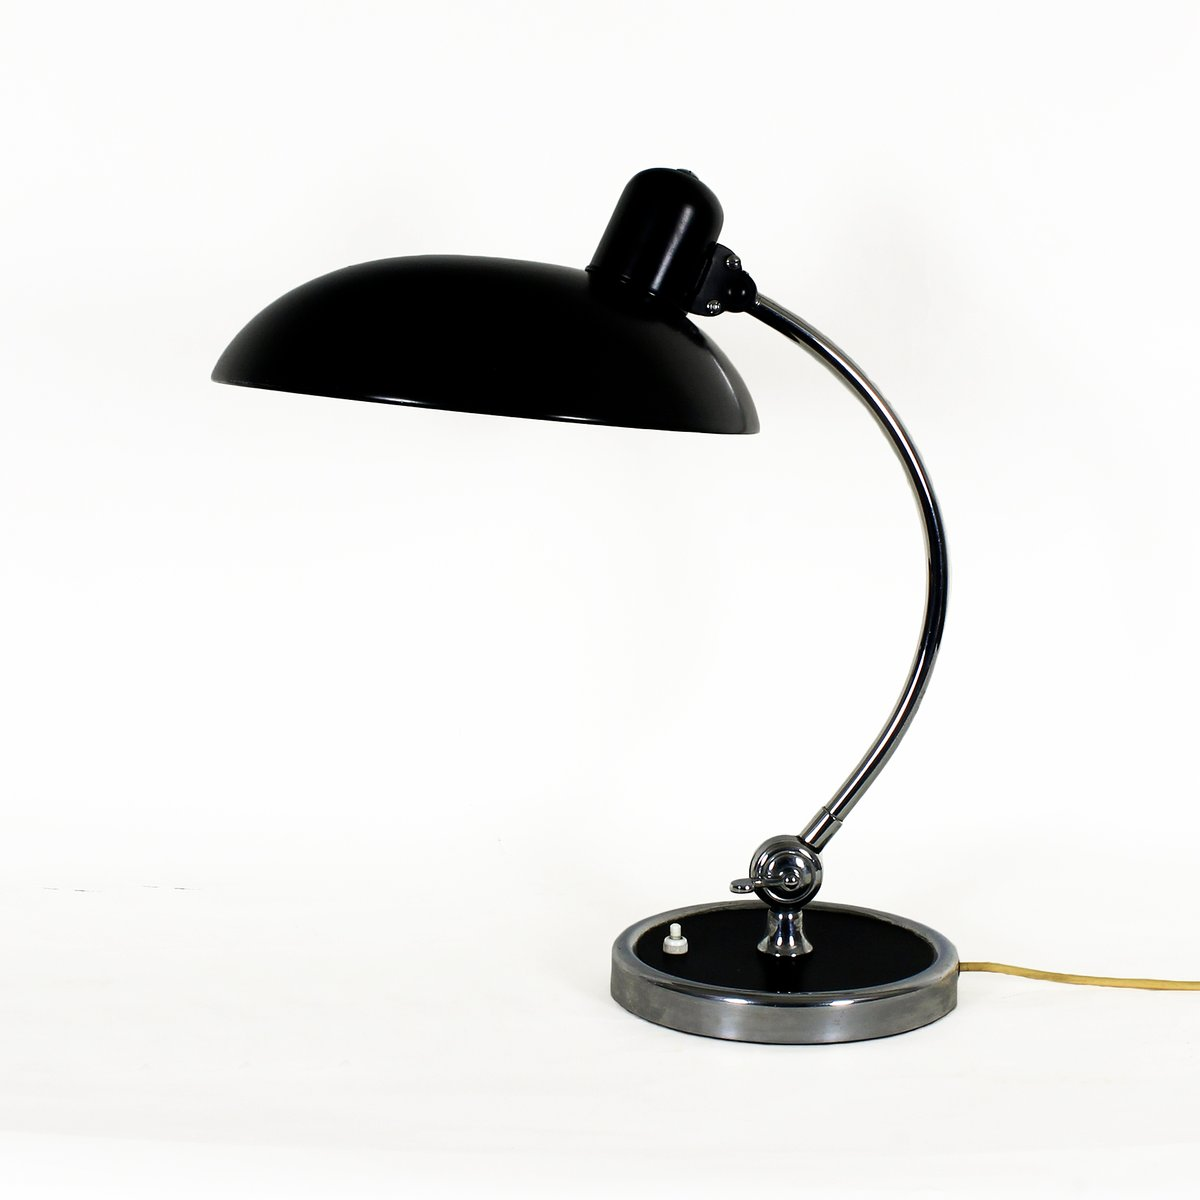 Kaiser Idell 6631 Kaiser-idell Luxus 6631 Desk Lamp By Christian Dell For